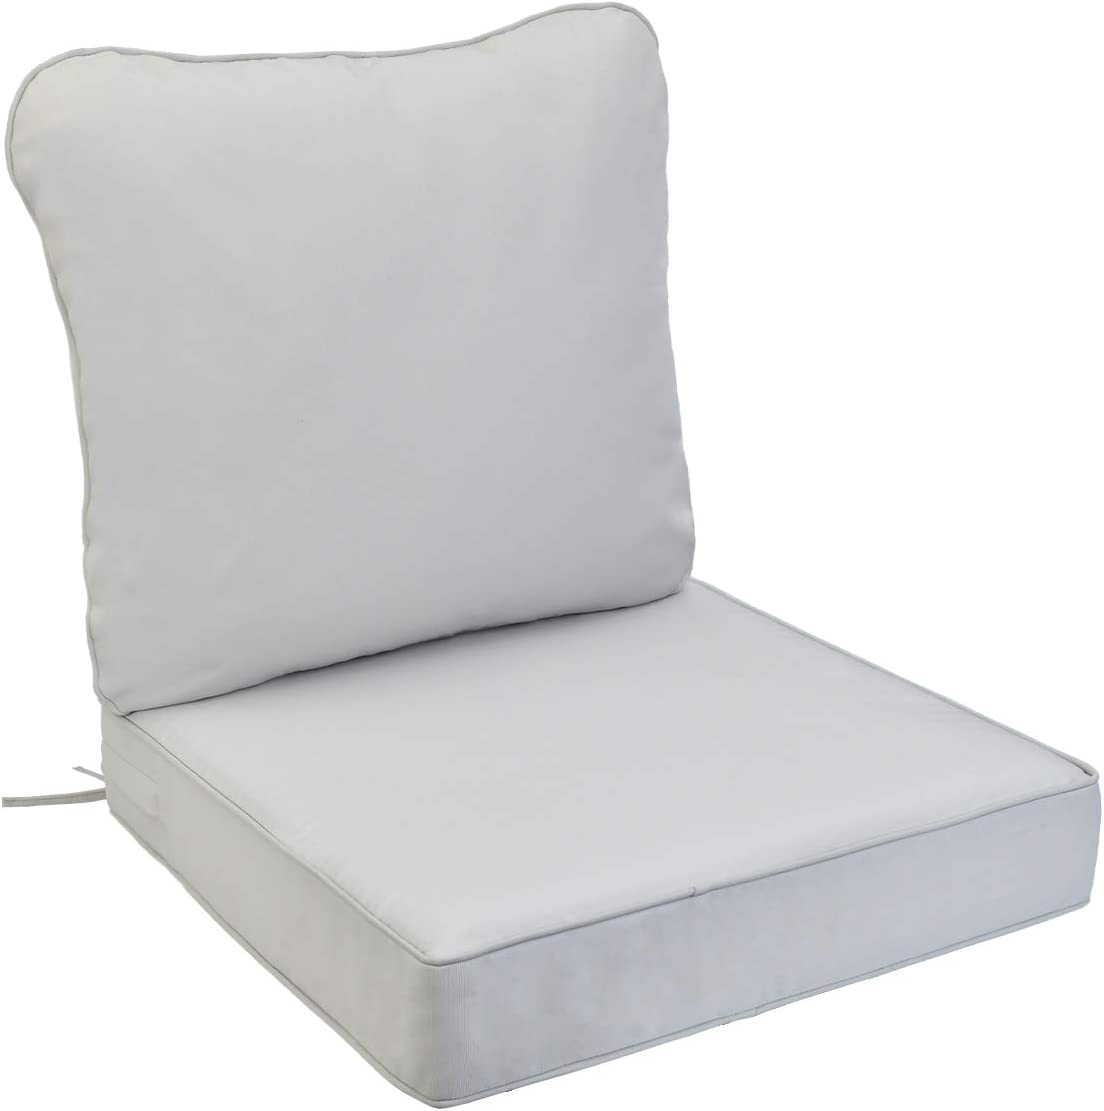 AAAAAcessories Outdoor/Indoor Water-Resistant Deep Seat Chair Cushion, Replacement Patio Furniture Cushions, 24 x 24 x 5 Inch, Light Gray/Cool Gray